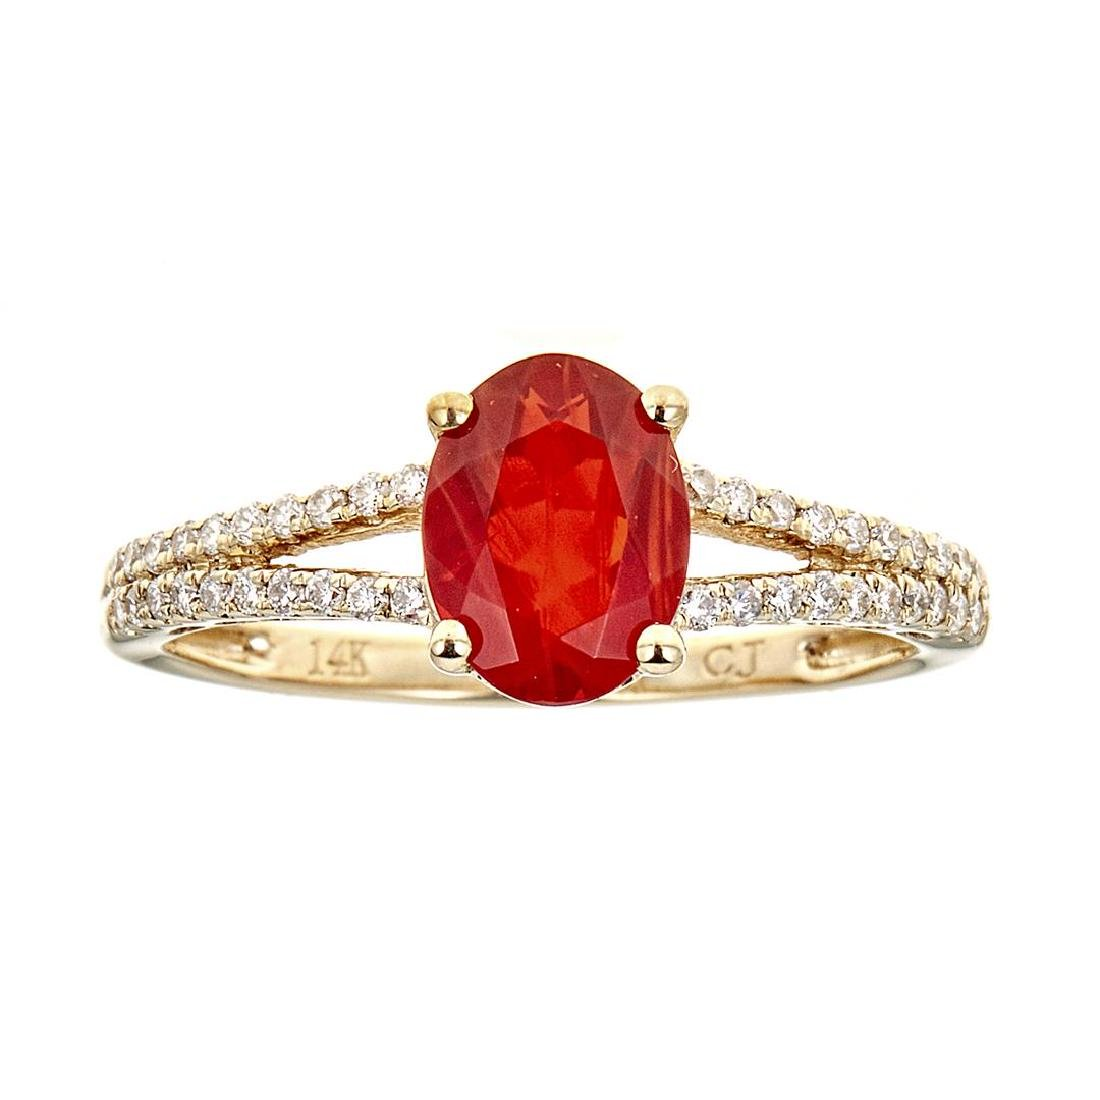 0.87 ctw Fire Opal and Diamond Ring - 14KT Yellow Gold